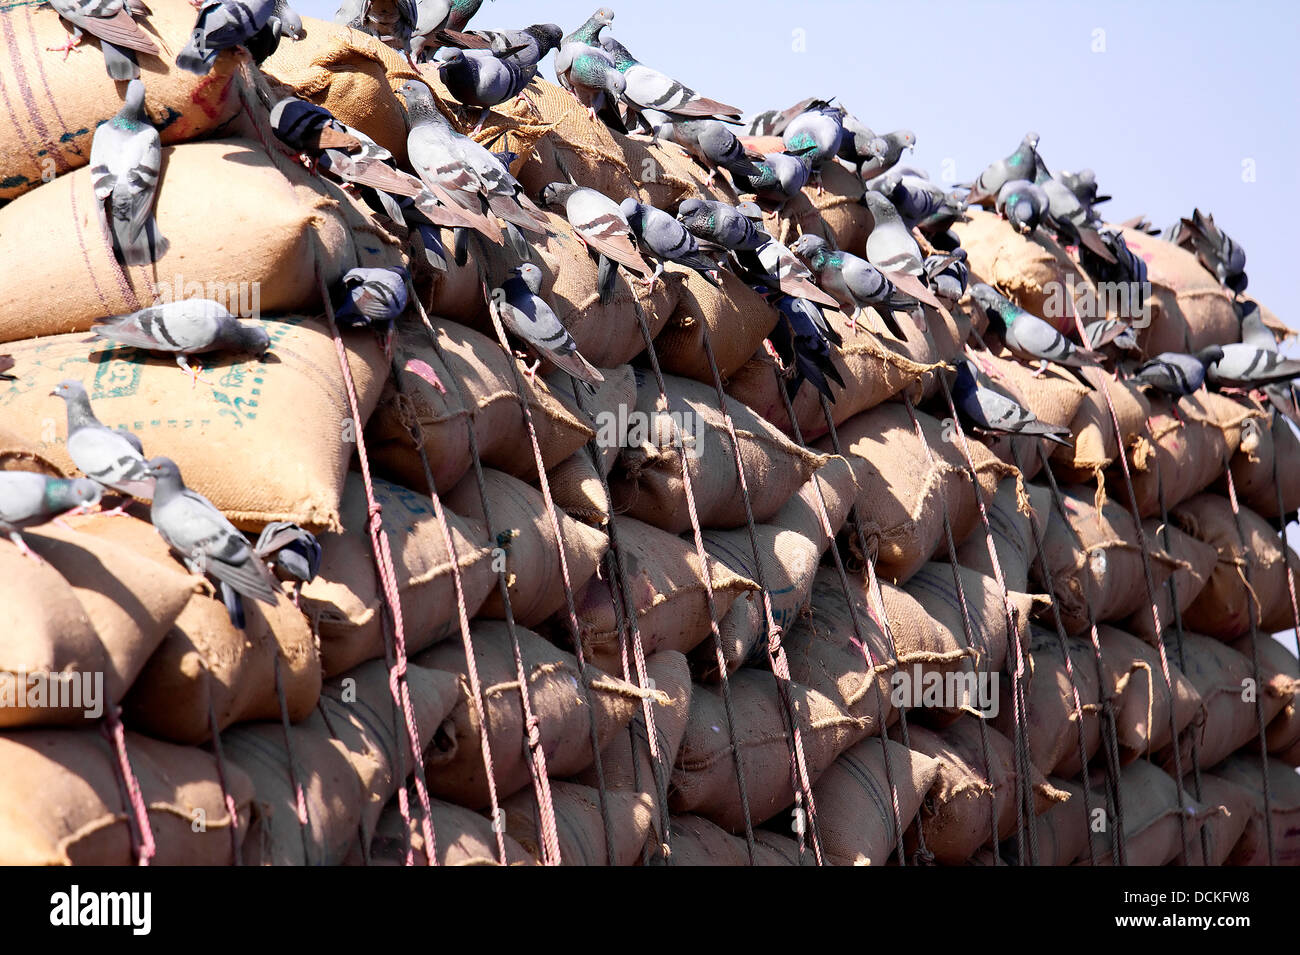 Pigeons,sacks of grains,feeding,roadside,spectacle,Rajasthan,India,Indian Blue Rock Piegon,Columba livia, - Stock Image